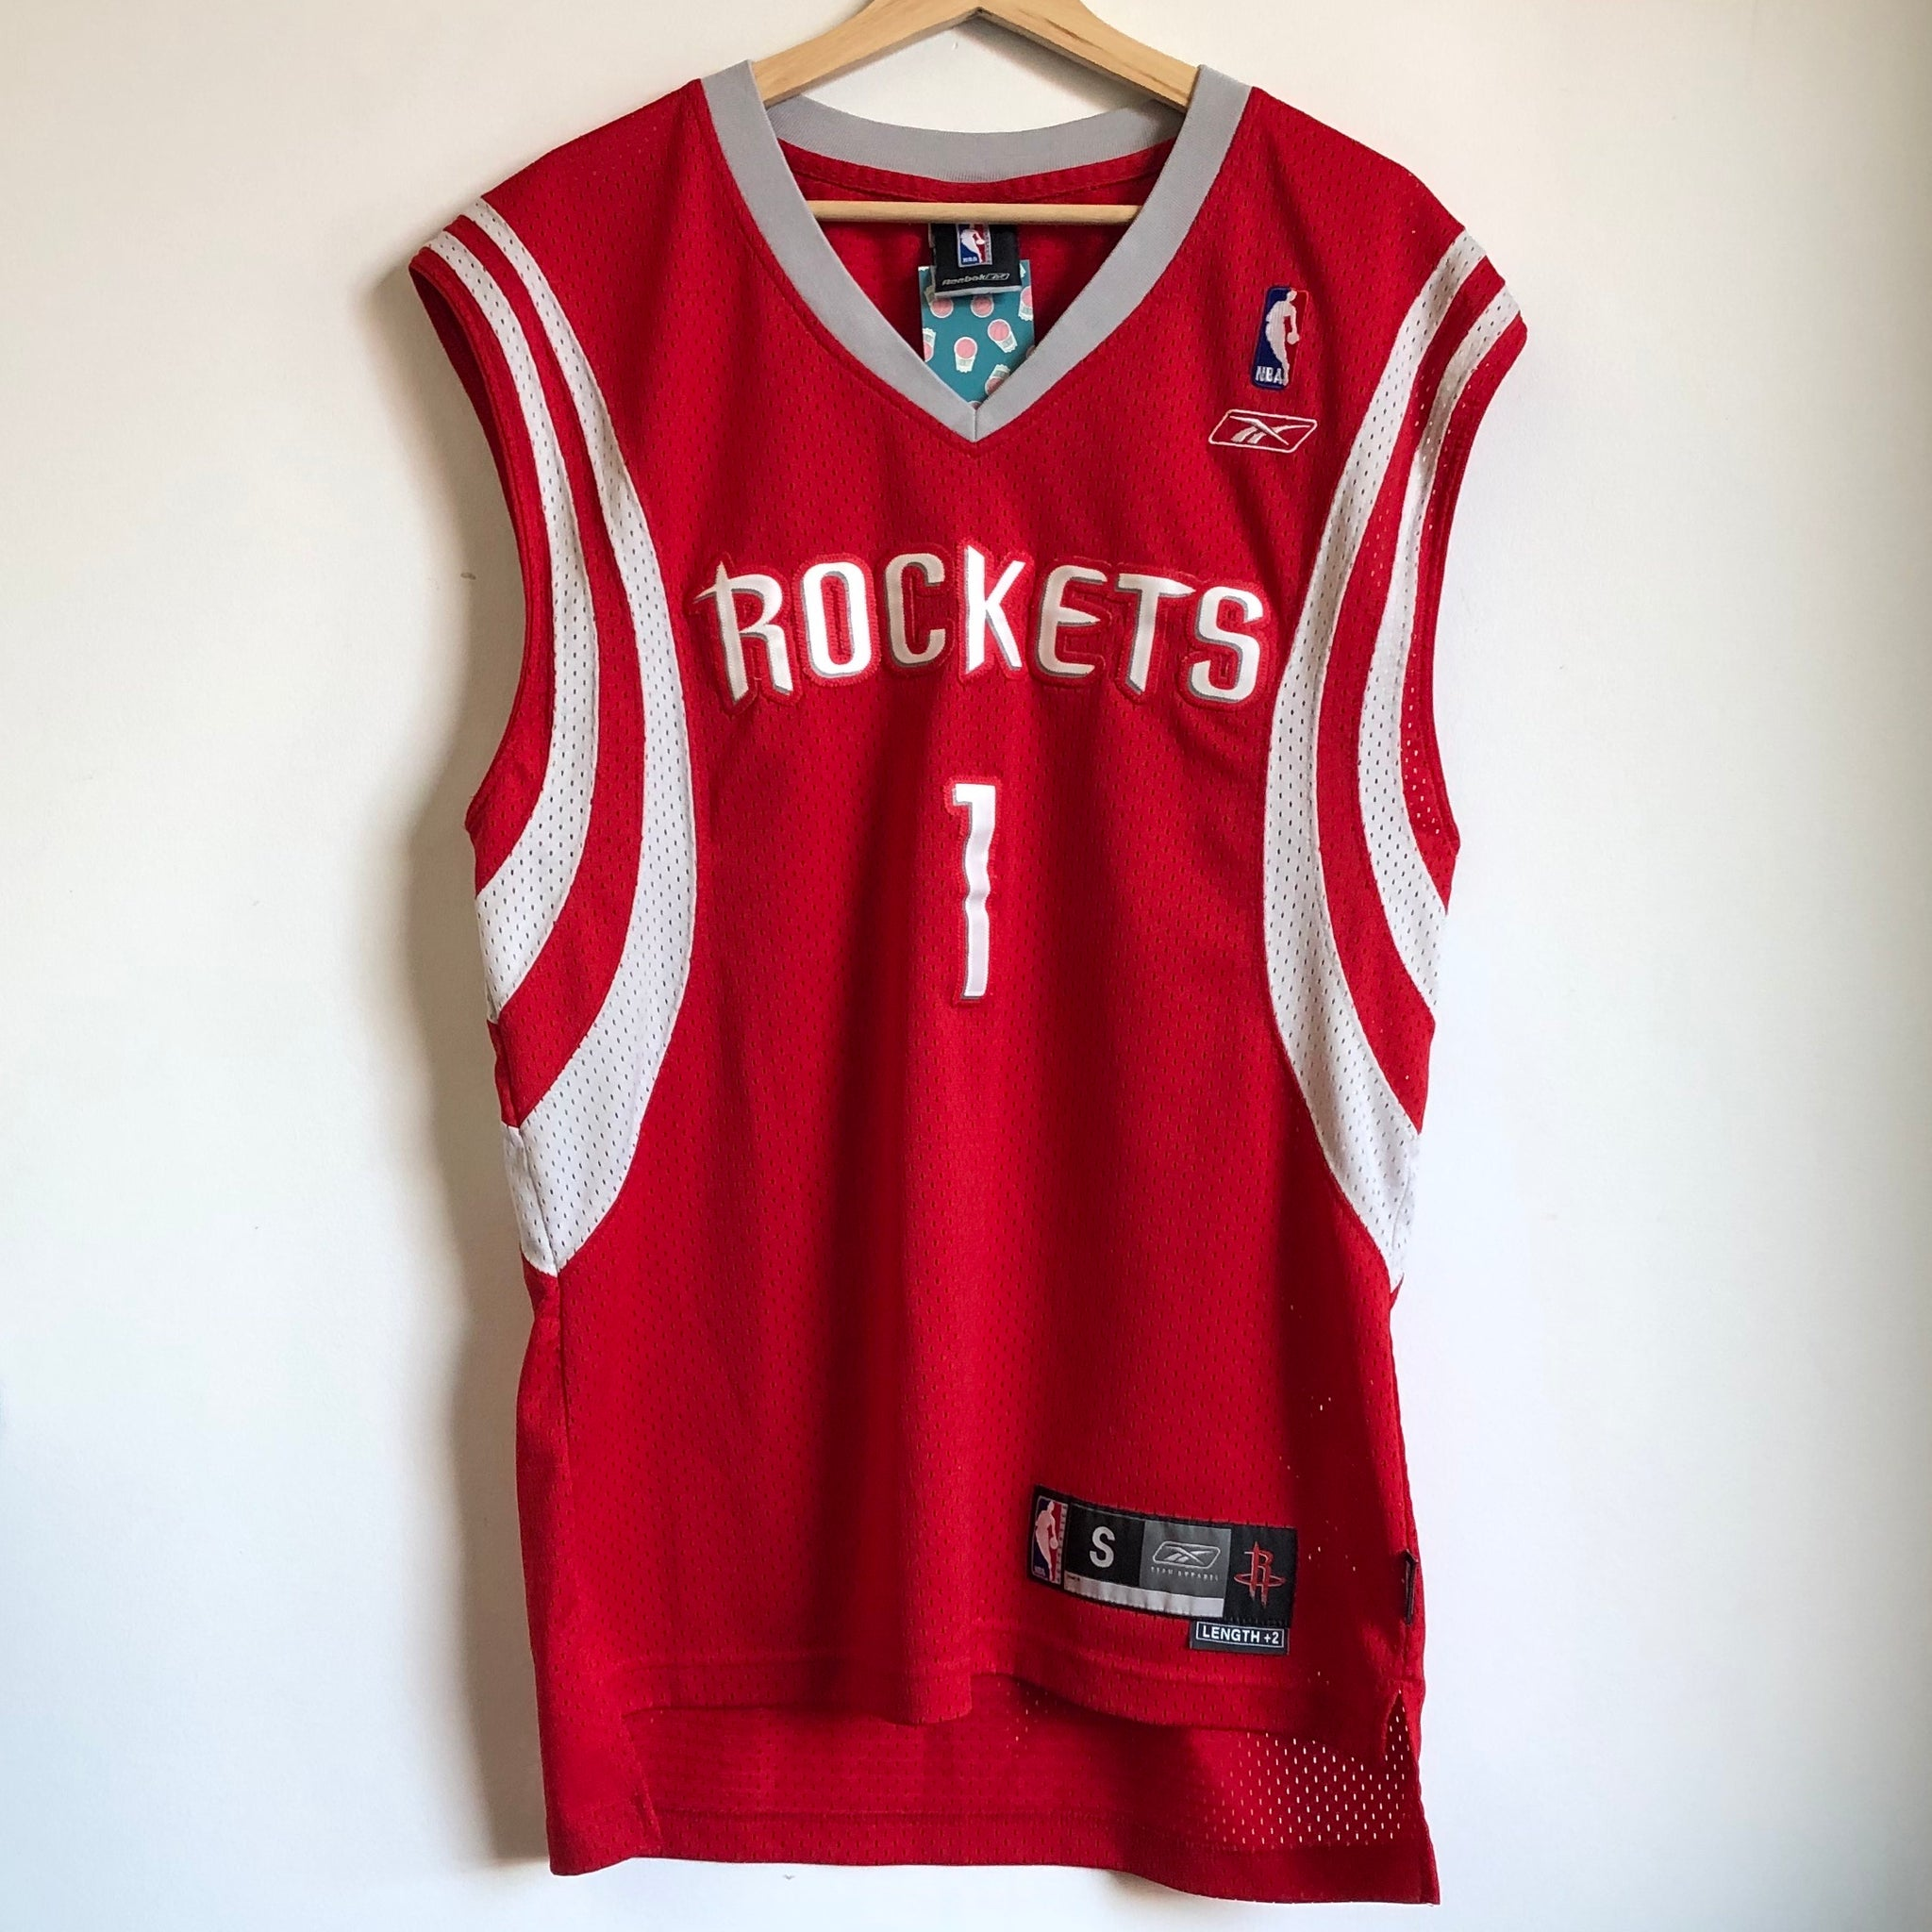 Reebok Tracy McGrady Houston Rockets Red Swingman Basketball Jersey